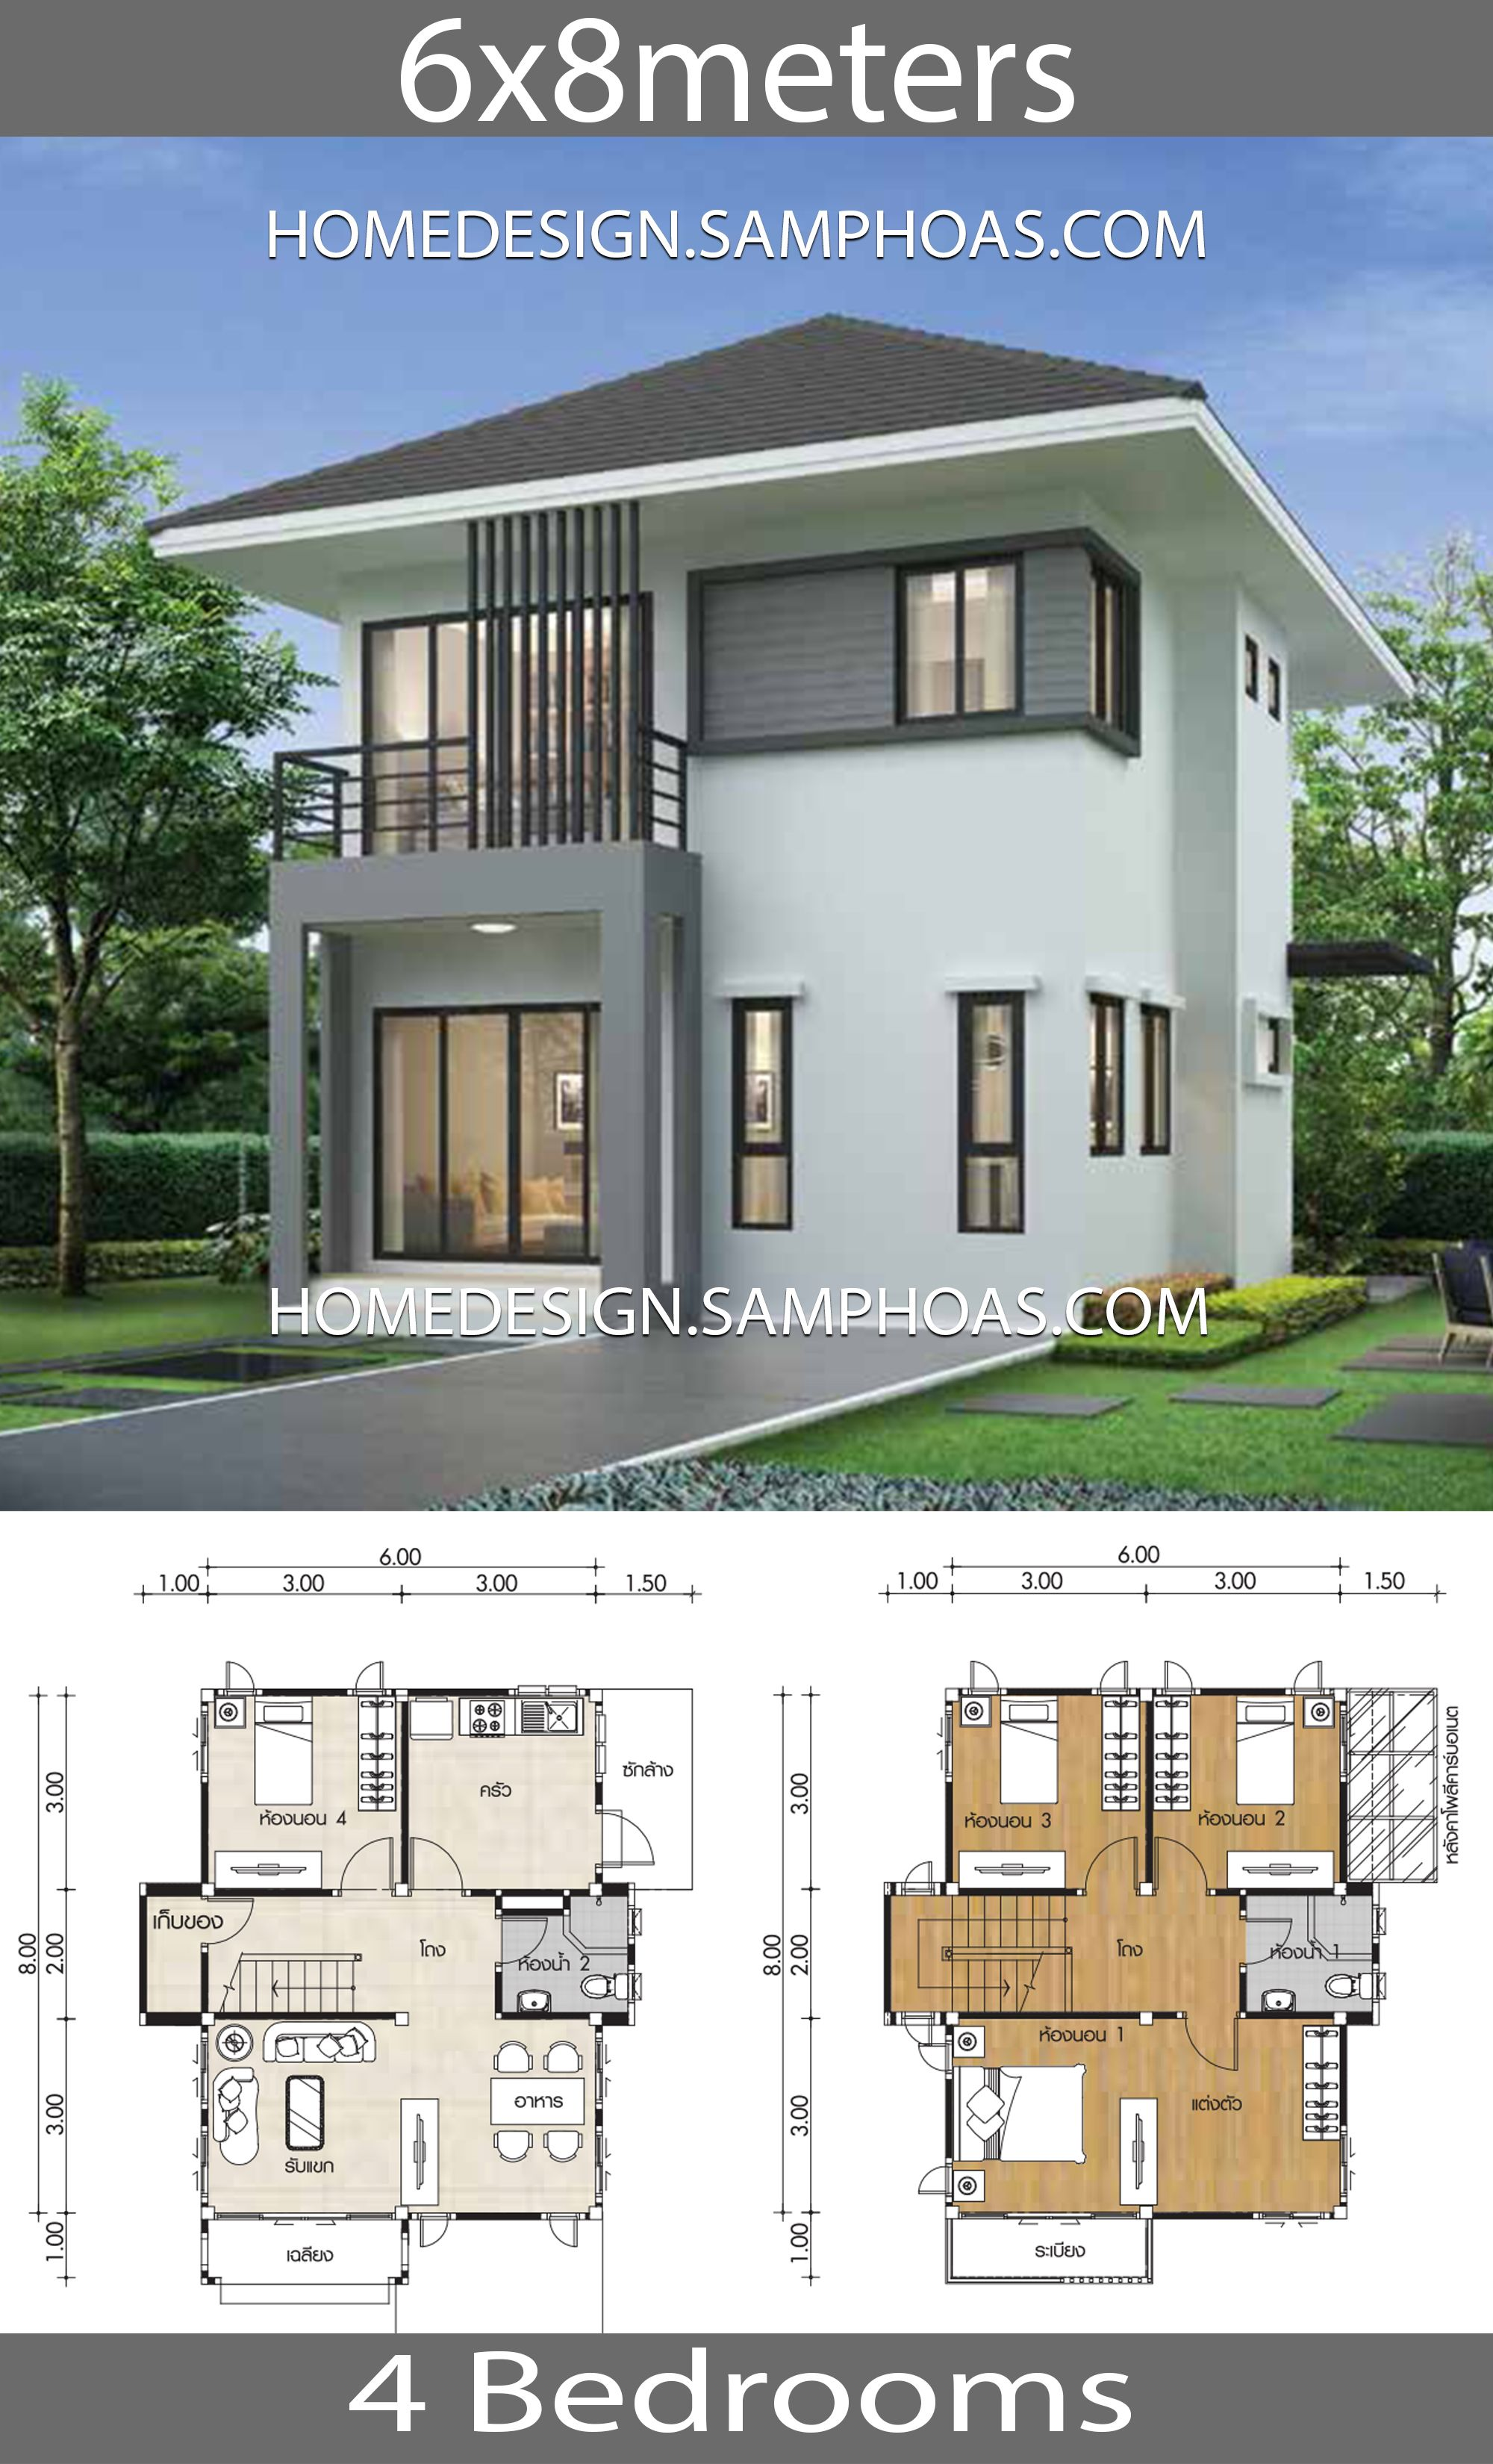 20 House Design With Layout Plans You Wish To See House Plans 3d Affordable House Plans Small House Design Plans Modern House Plans